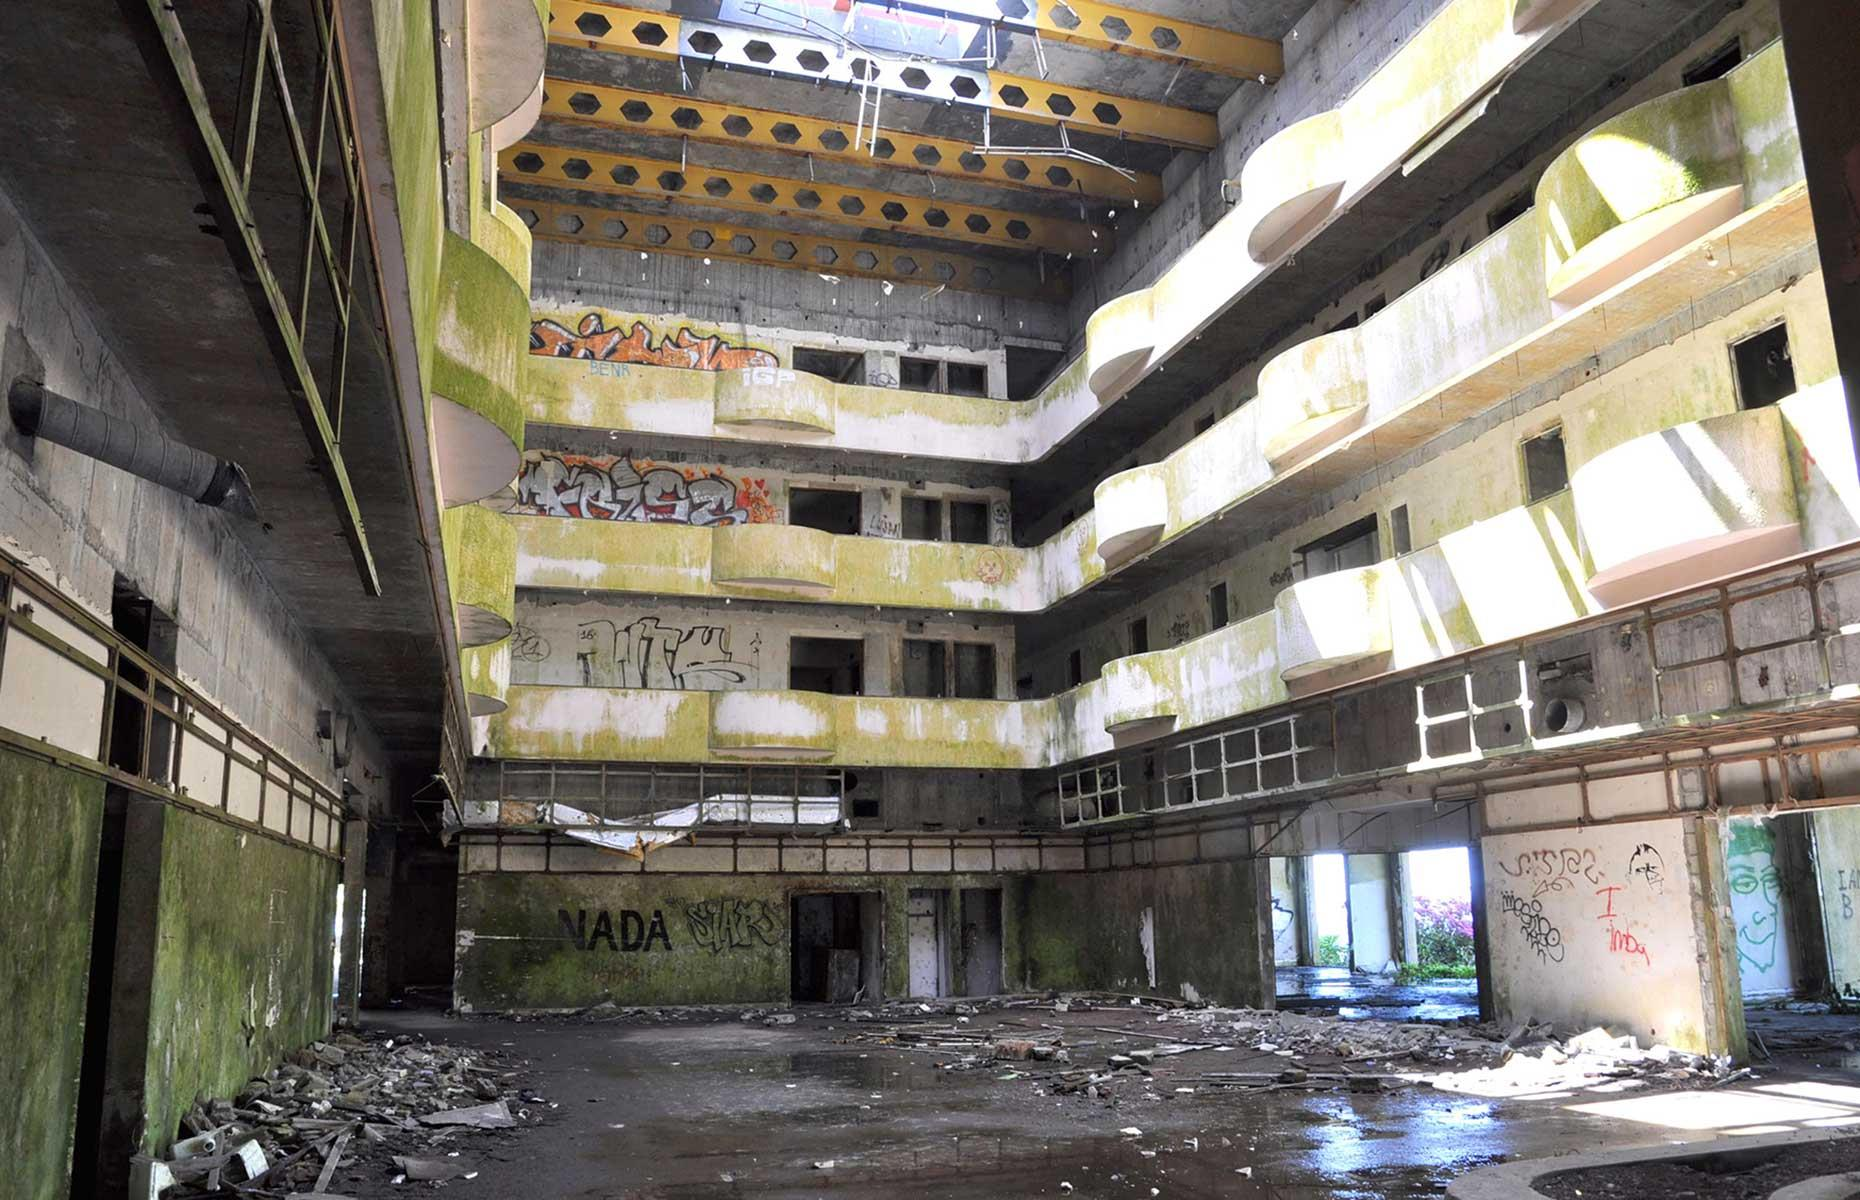 Slide 37 of 70: Opened in 1989 to lure tourists to the then untrammeled Azores, Hotel Monte Palace only operated for just over a year before it was shut. Since then, the mountaintop resort has been abandoned and become a popular destination for urban explorers.